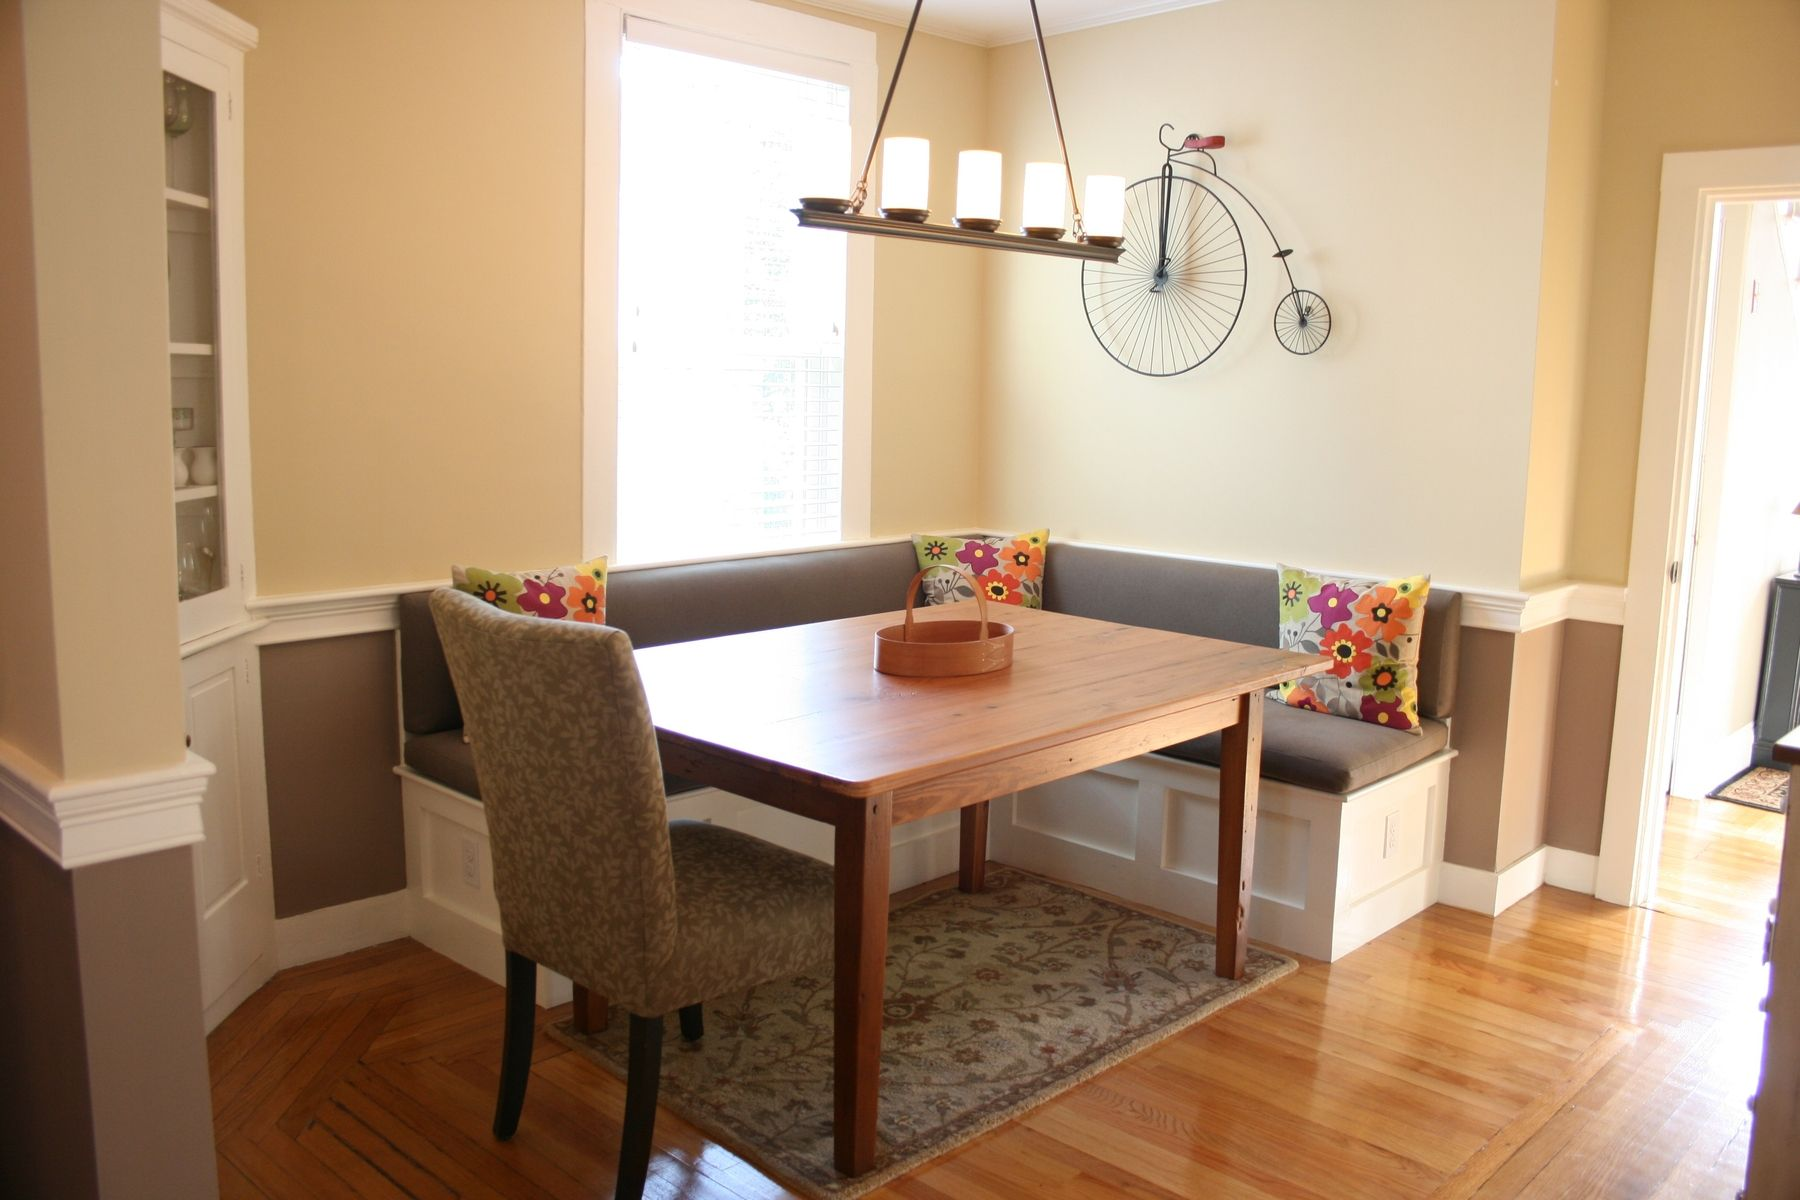 Charming Custom Banquette Seating For Interior Design Rennovation And Addition In  Newburyport, MA